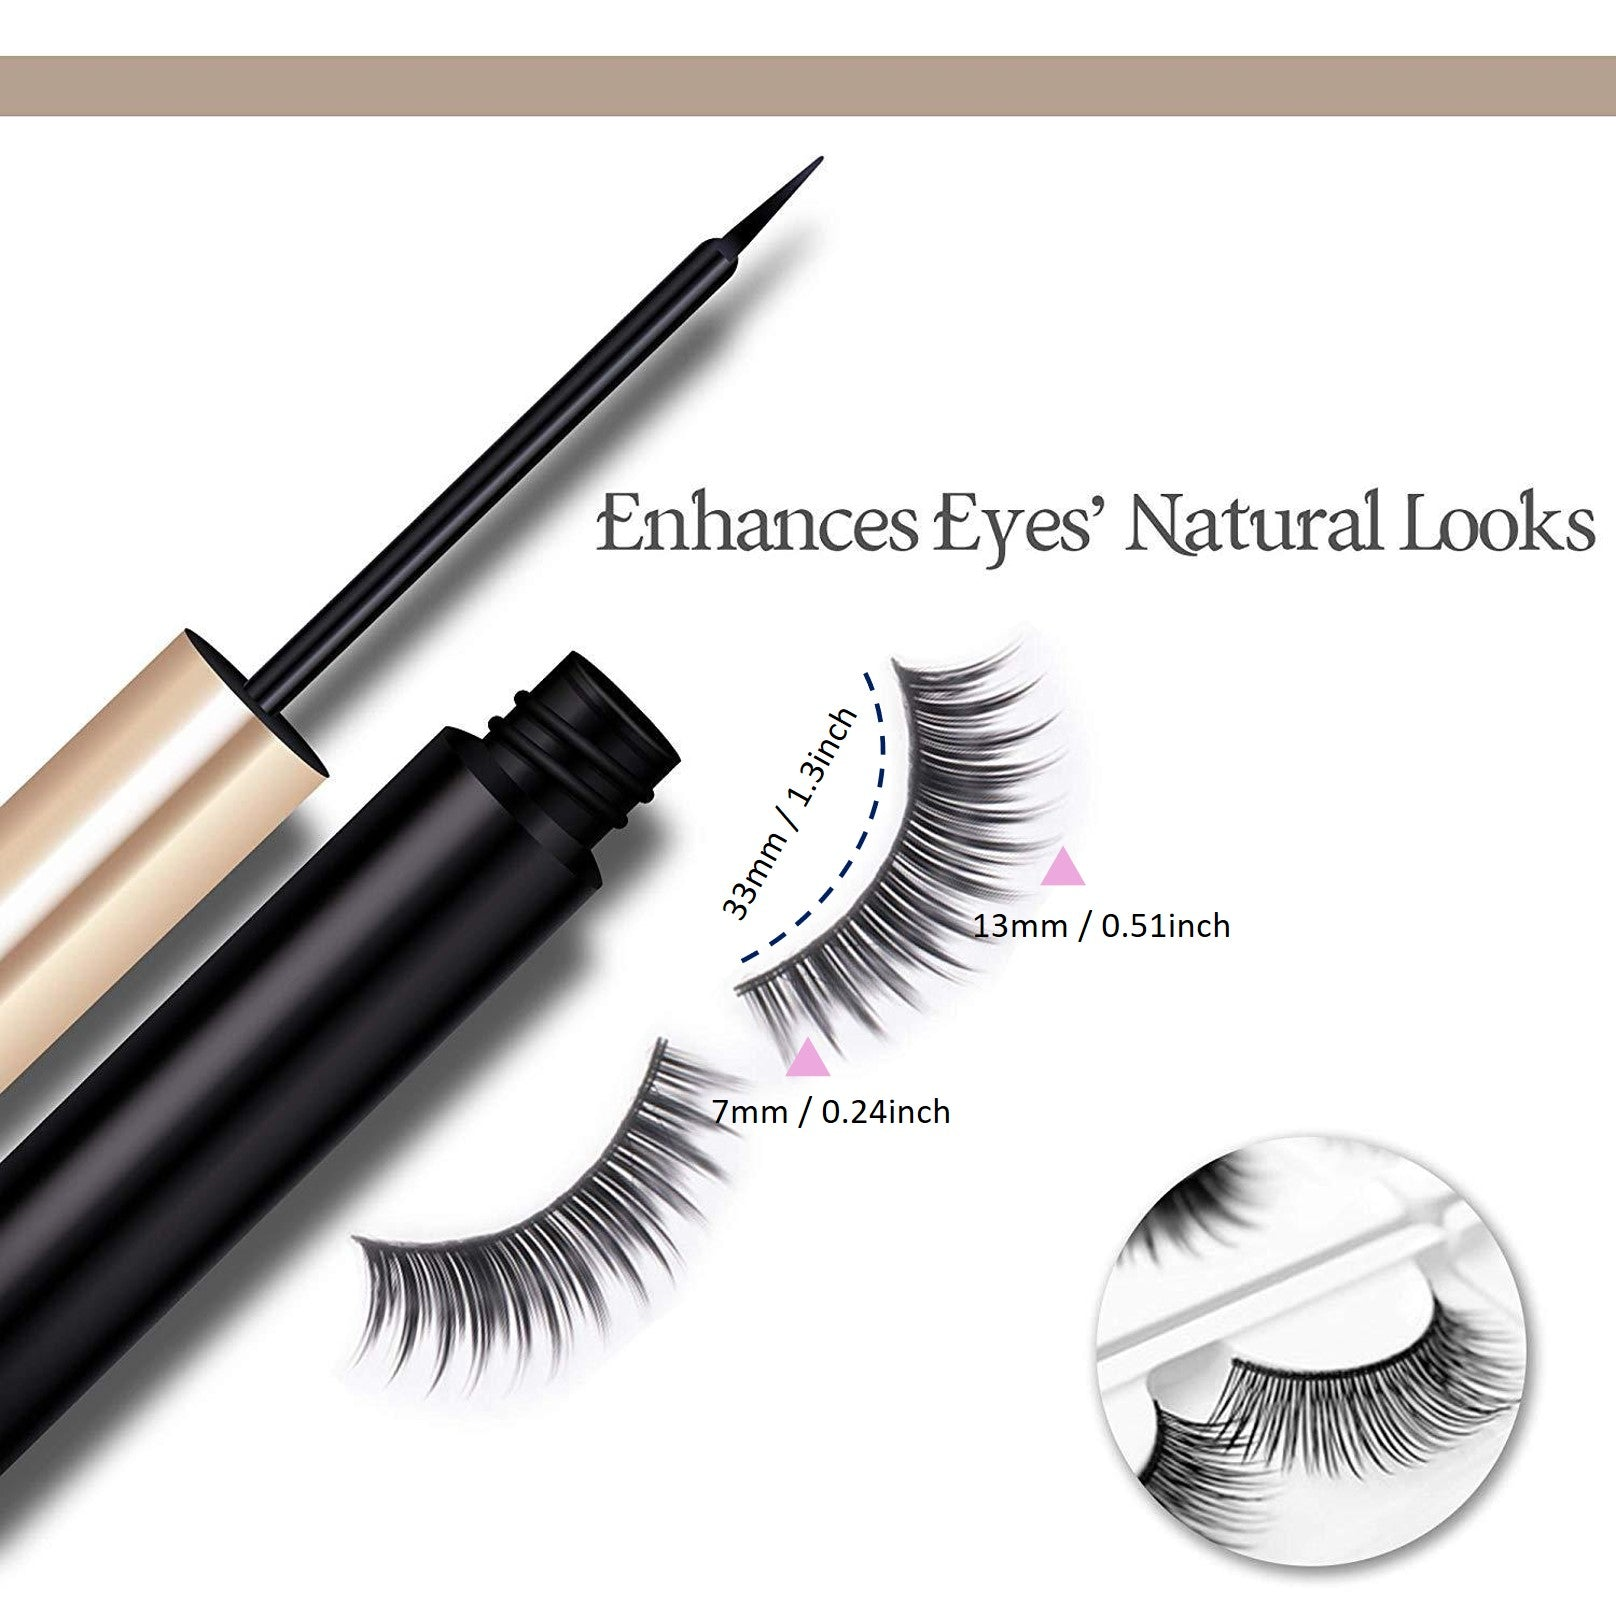 Same Designed 3 Pairs of Natural Look Magnetic Eyelashes Kit with Applicator Tool